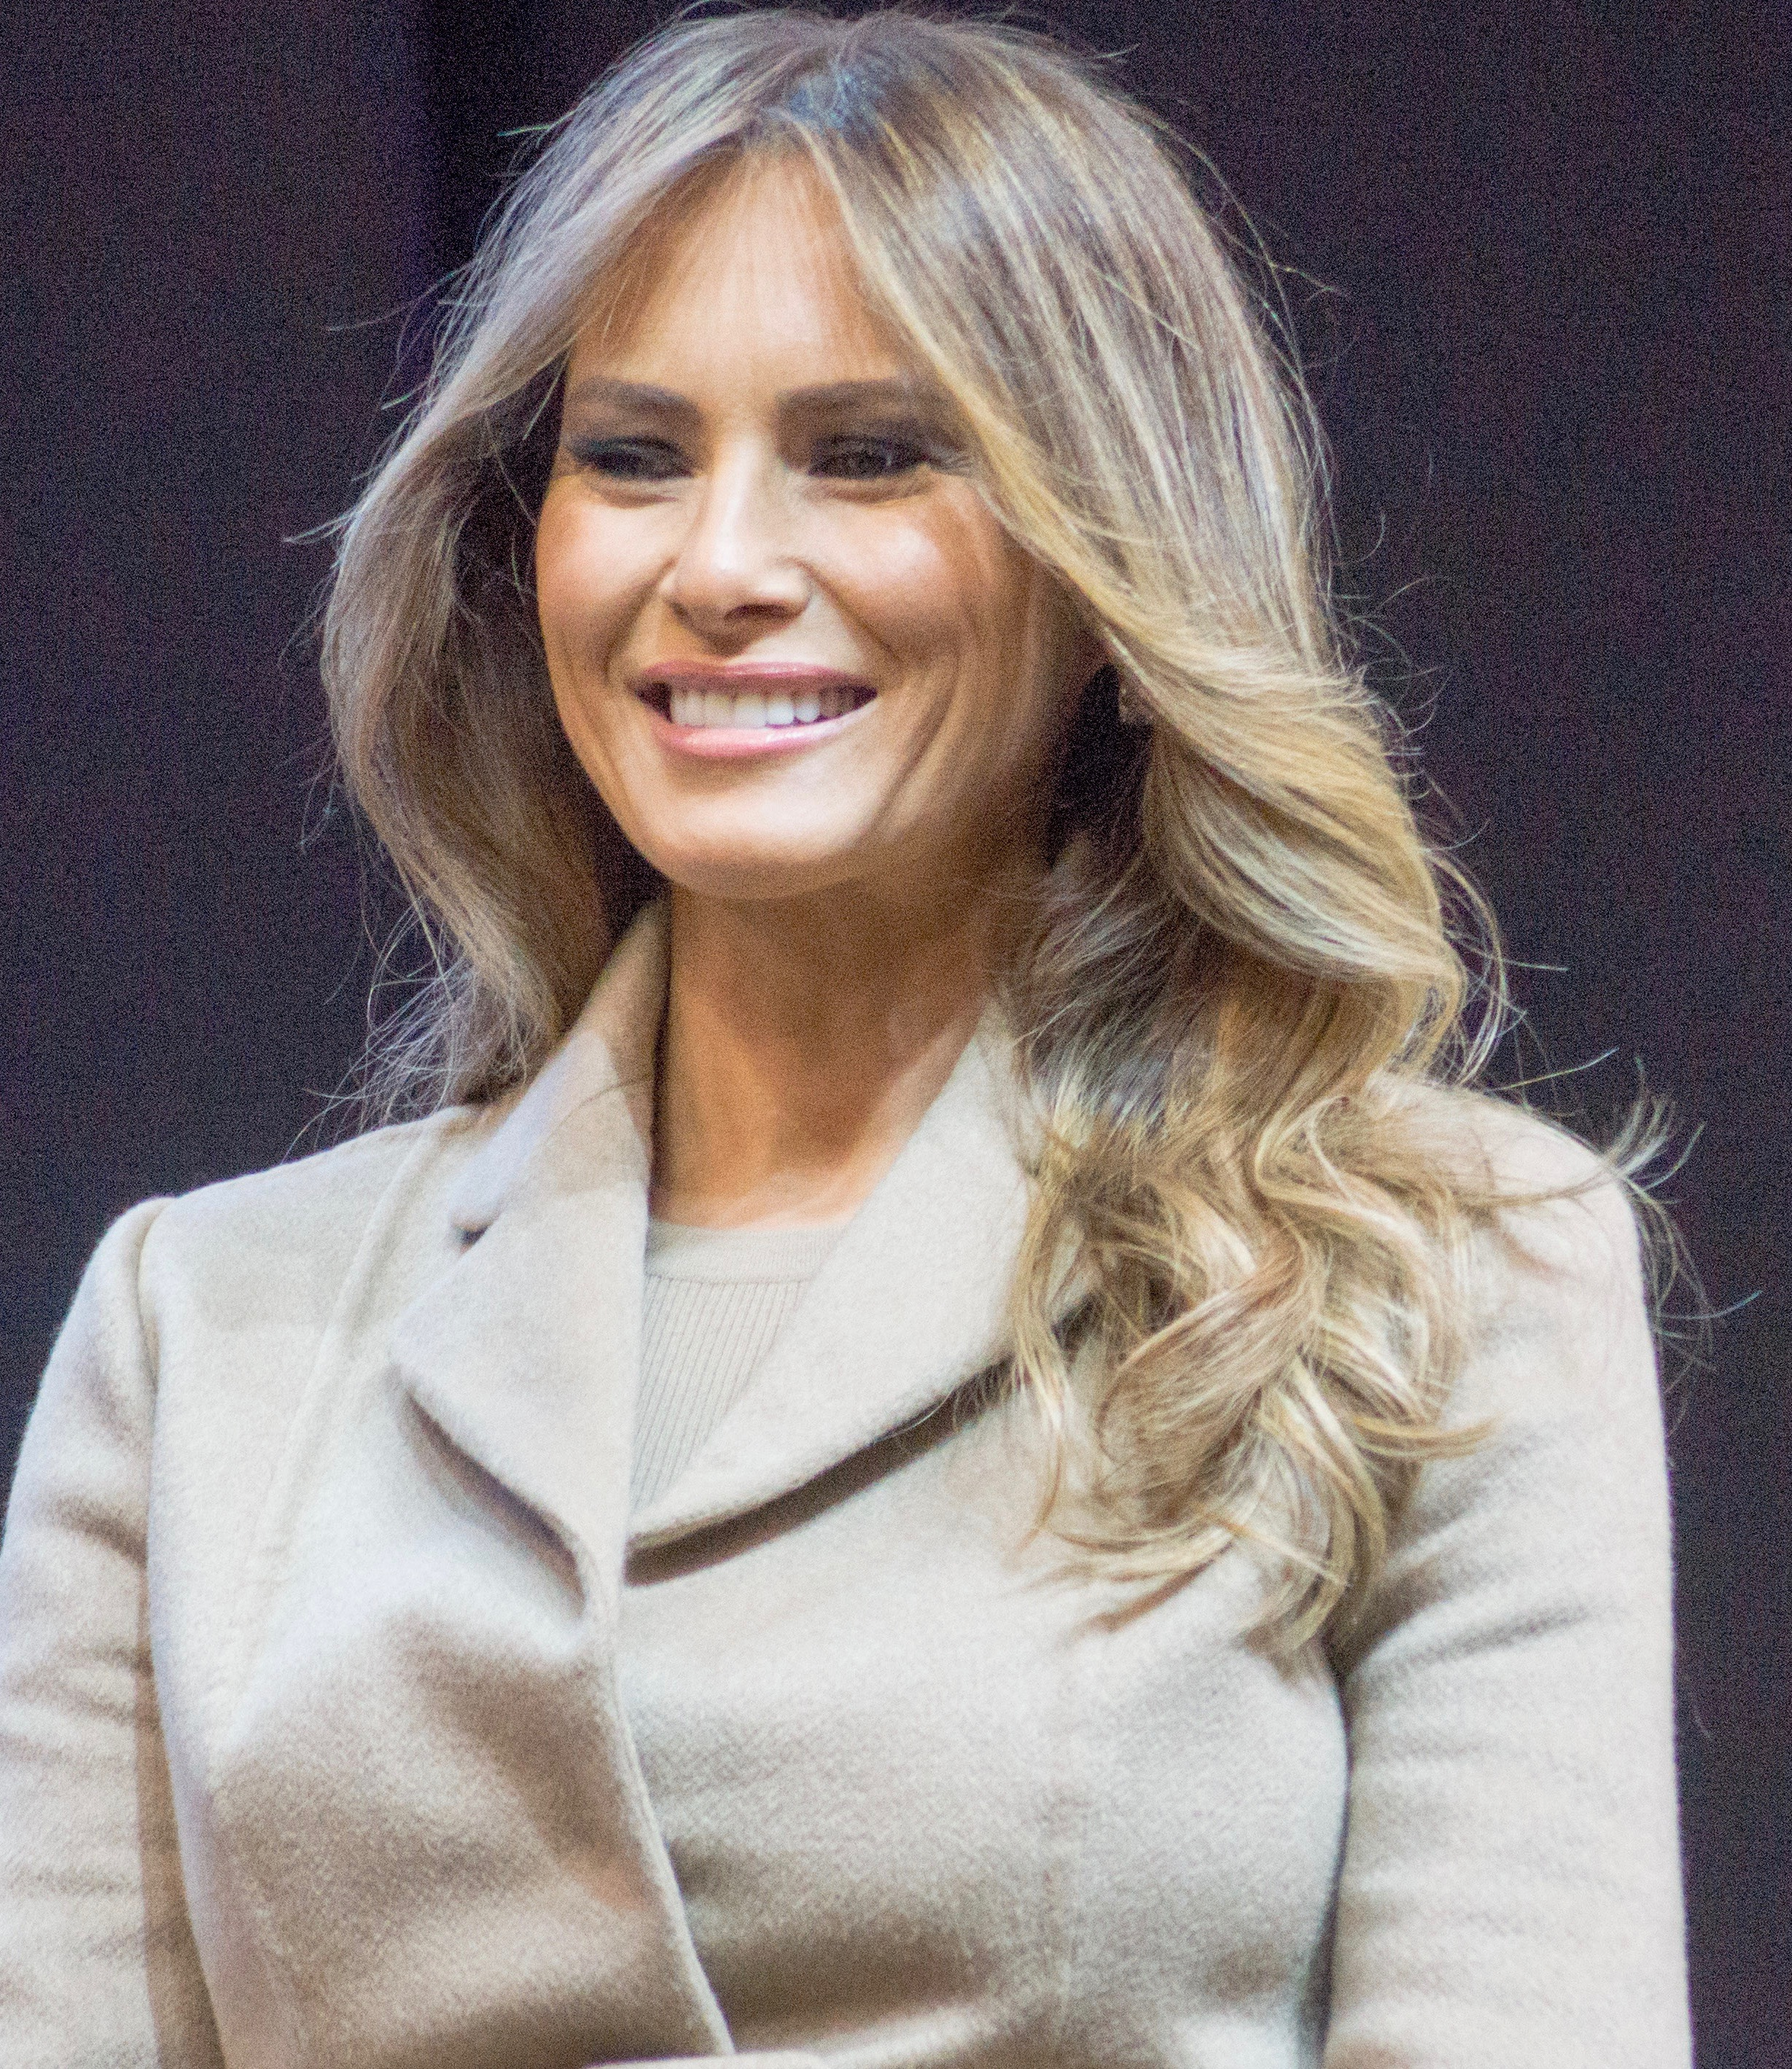 Trump's wife Melania at a campaign event in 2016